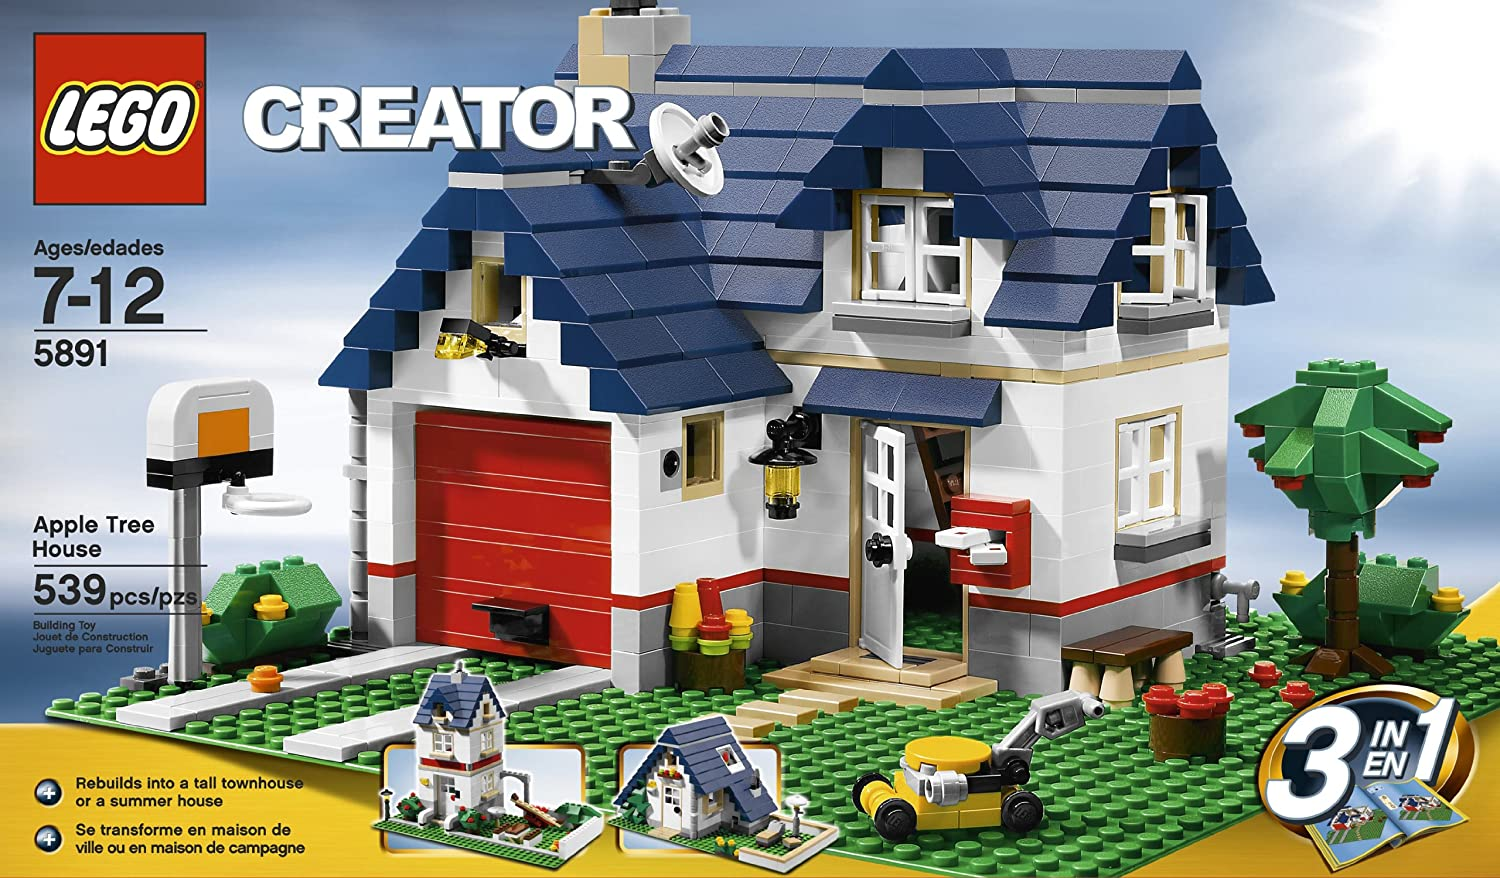 Amazon.com: LEGO Creator Apple Tree House (5891) - 539 Piece set  (Discontinued by manufacturer): Toys & Games